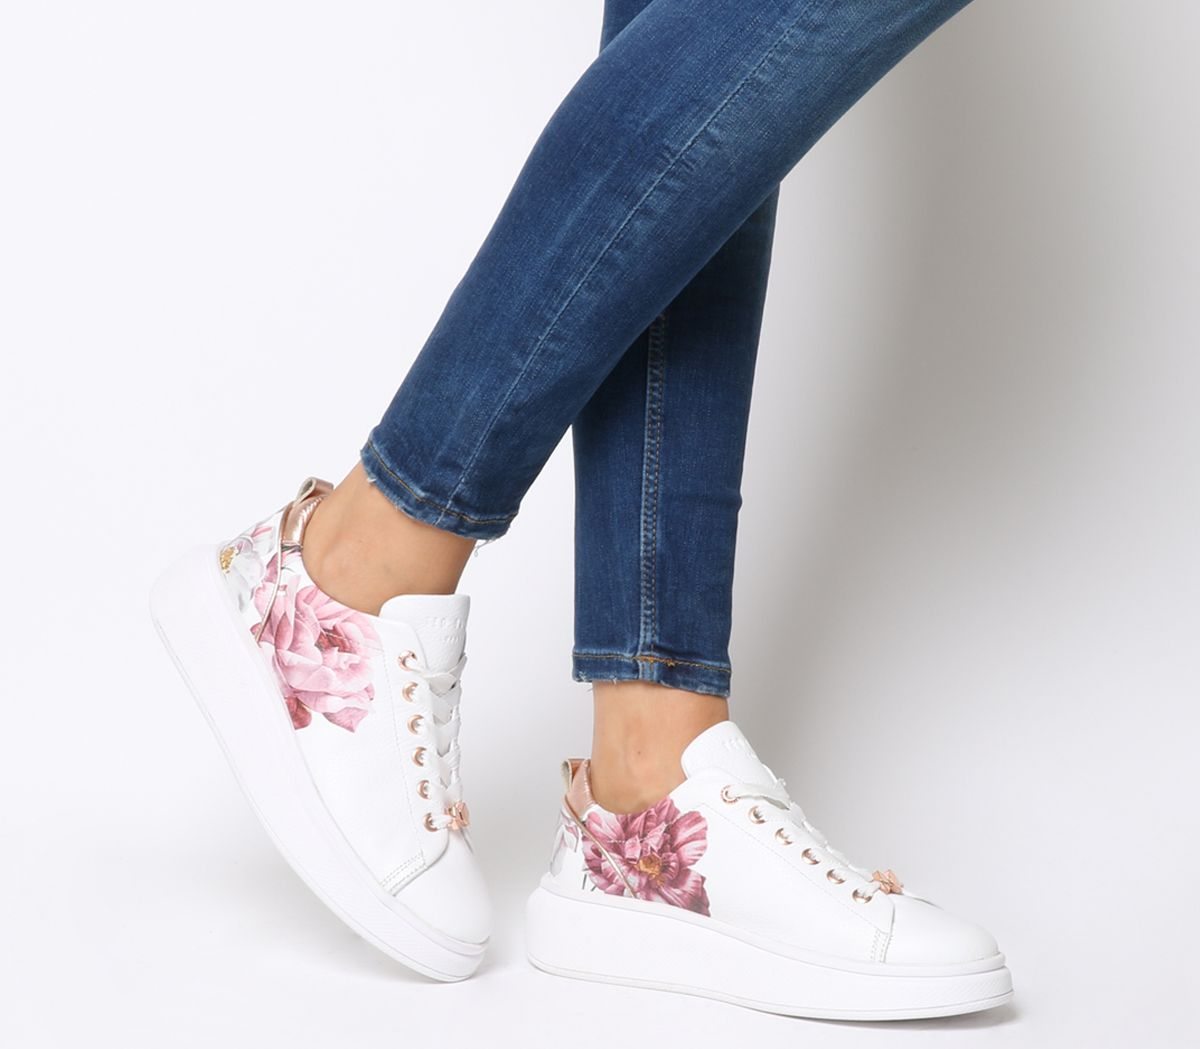 64cd8c4f8 Ted Baker Ailbe 2 Sneakers White Iguazu Leather - Hers trainers